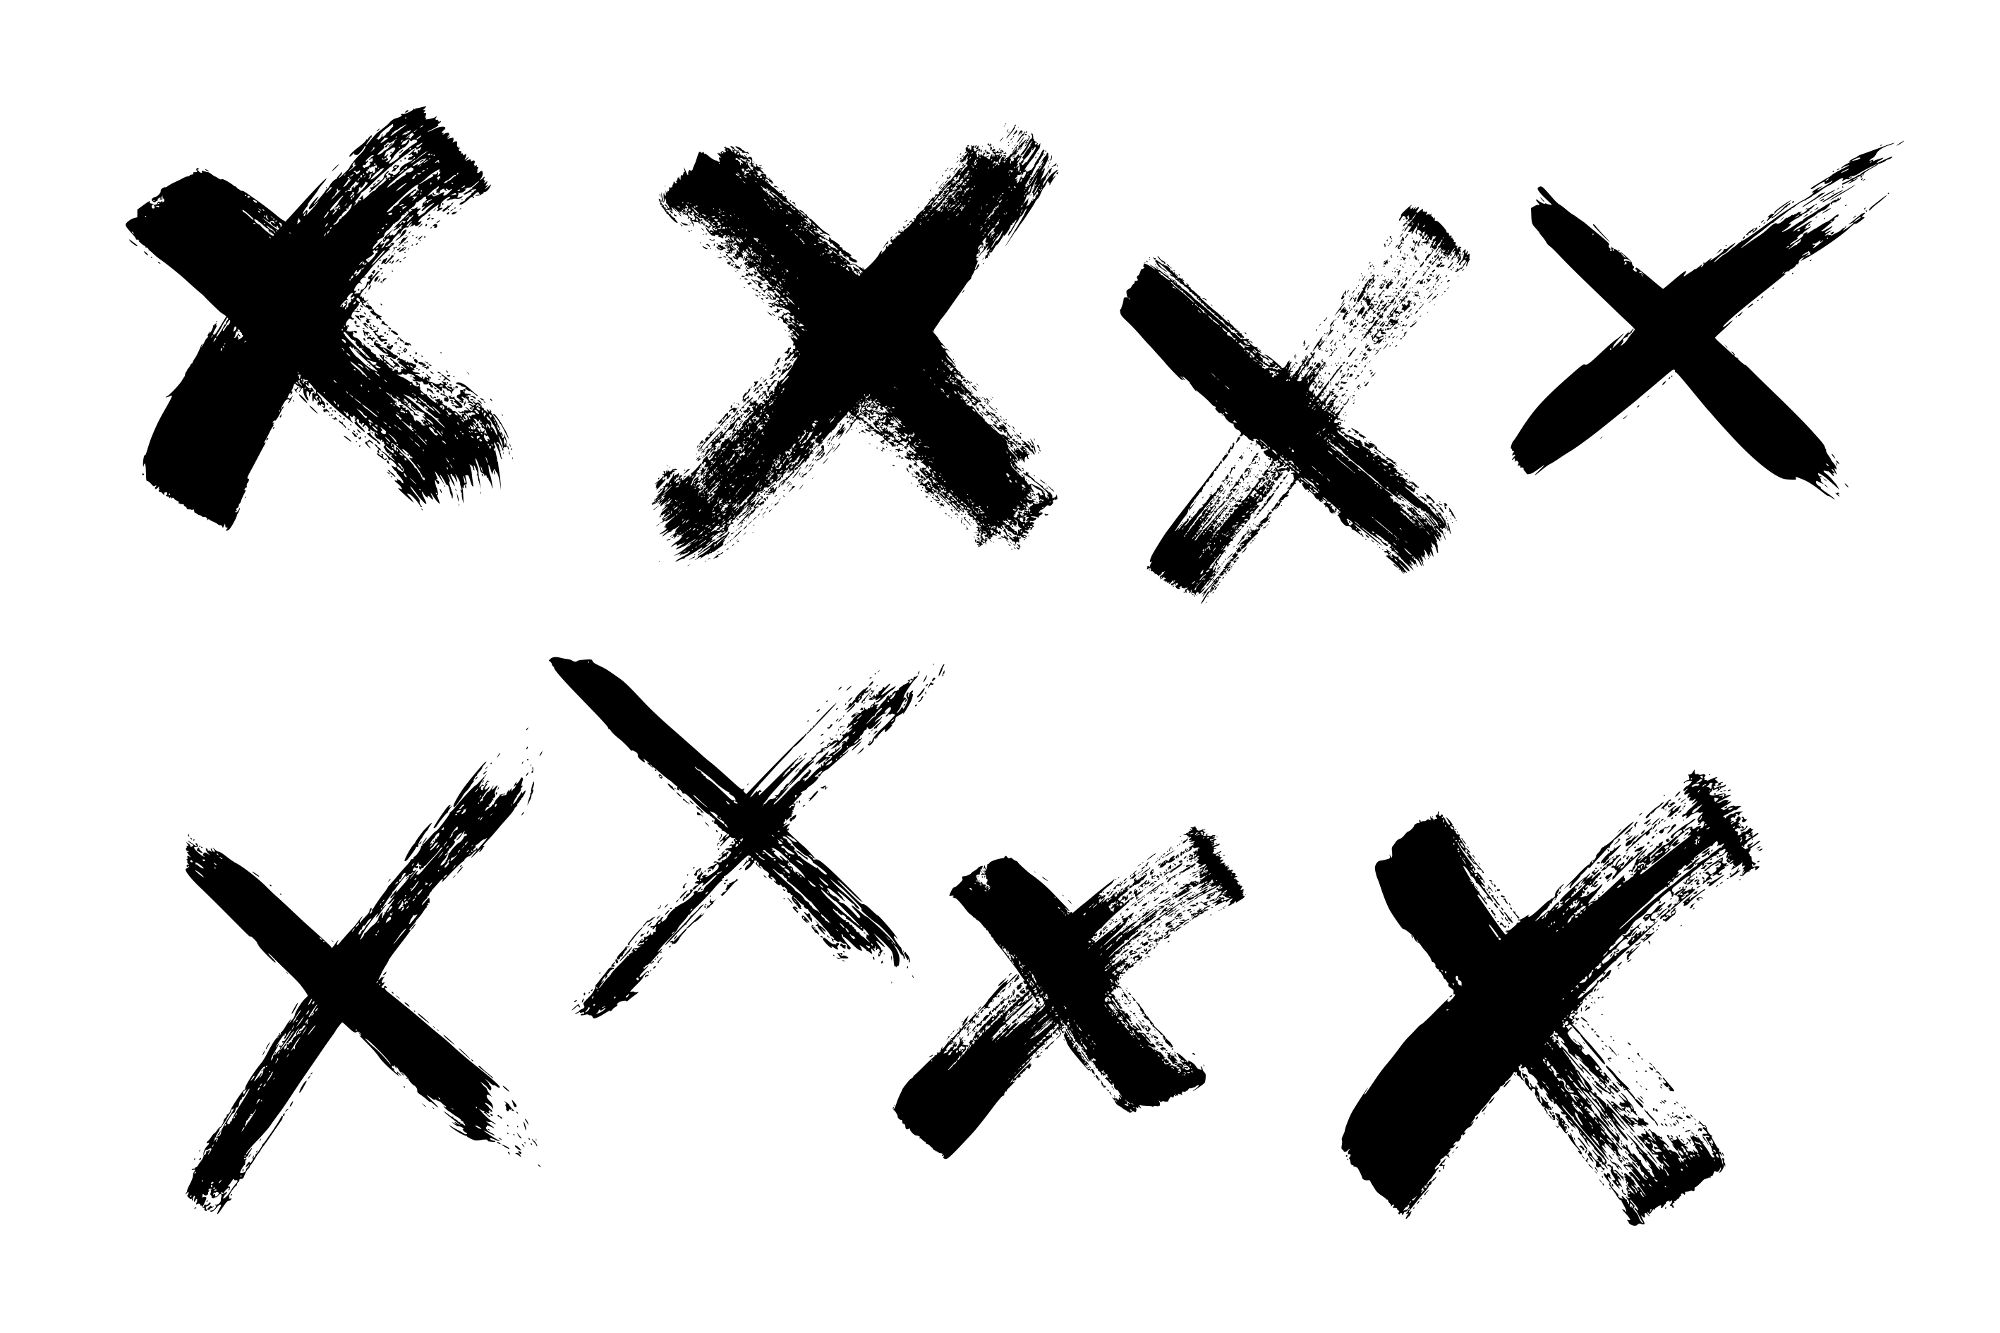 8-grunge-x-brush-stroke-cover.jpg